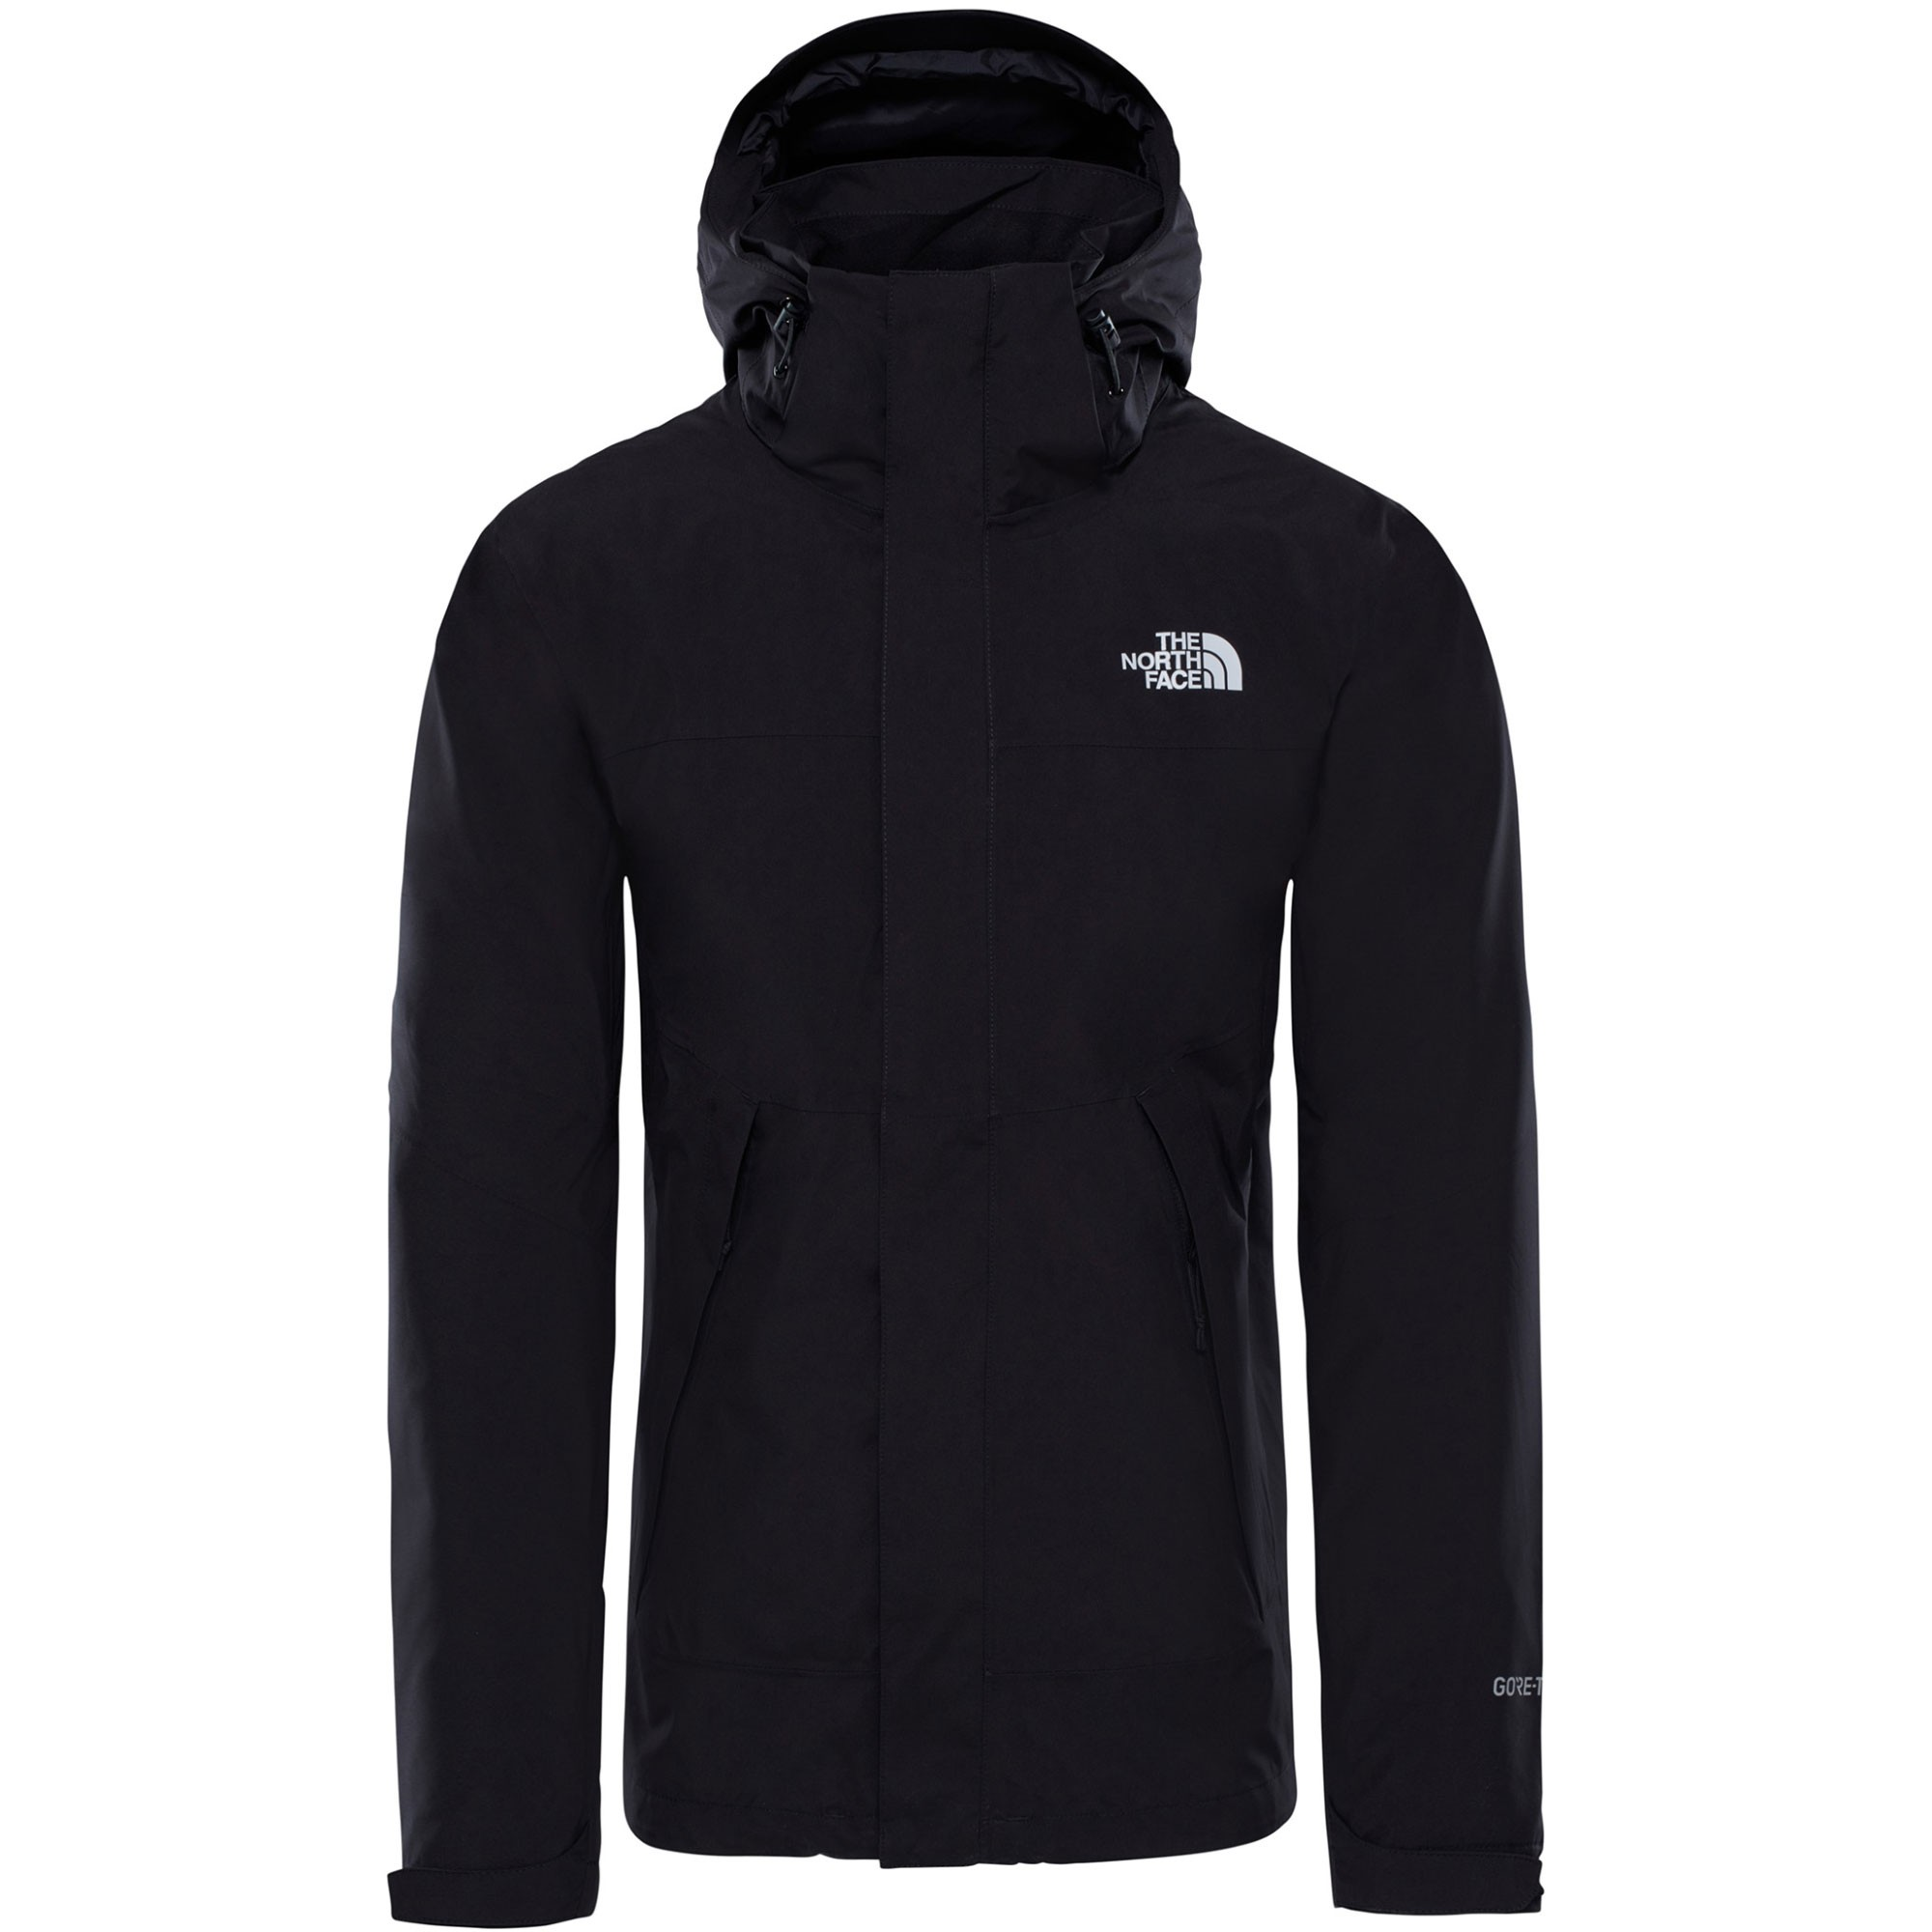 The North Face Mountain Light II Men's Shell Jacket - TNF Black